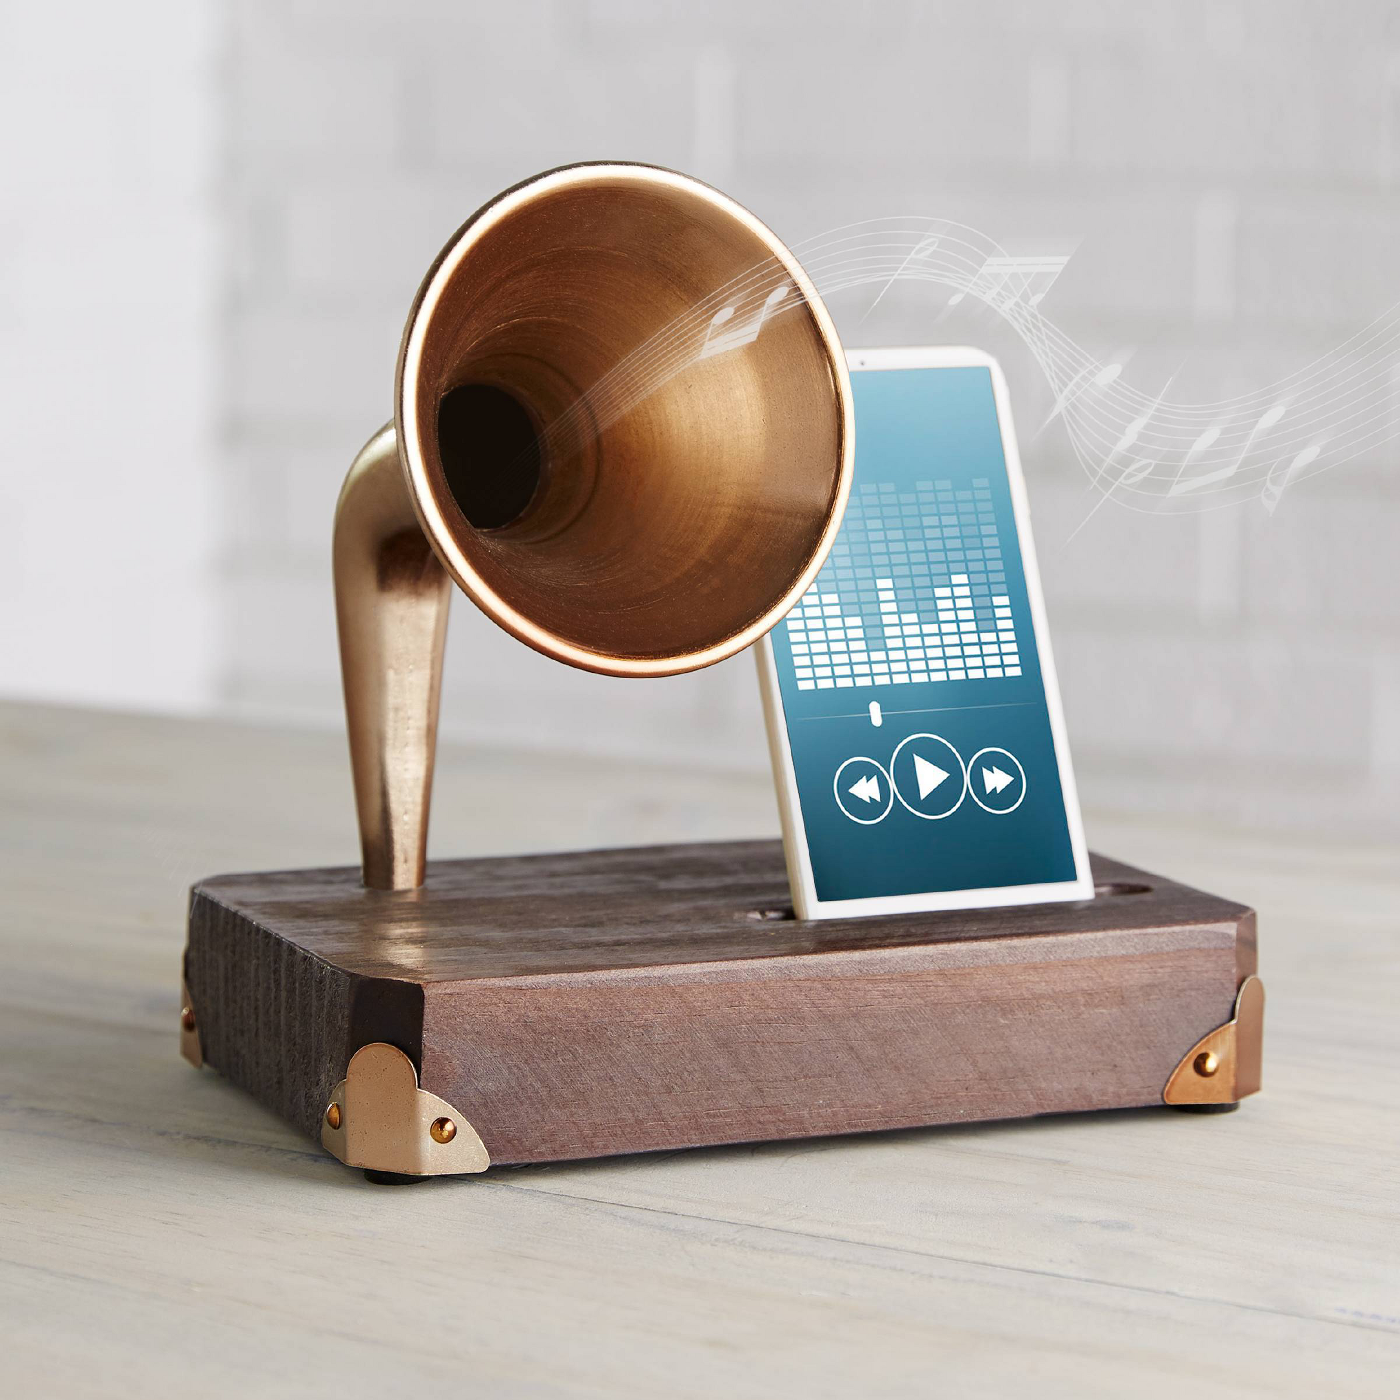 Phone docked on wooden block with golden amplifier